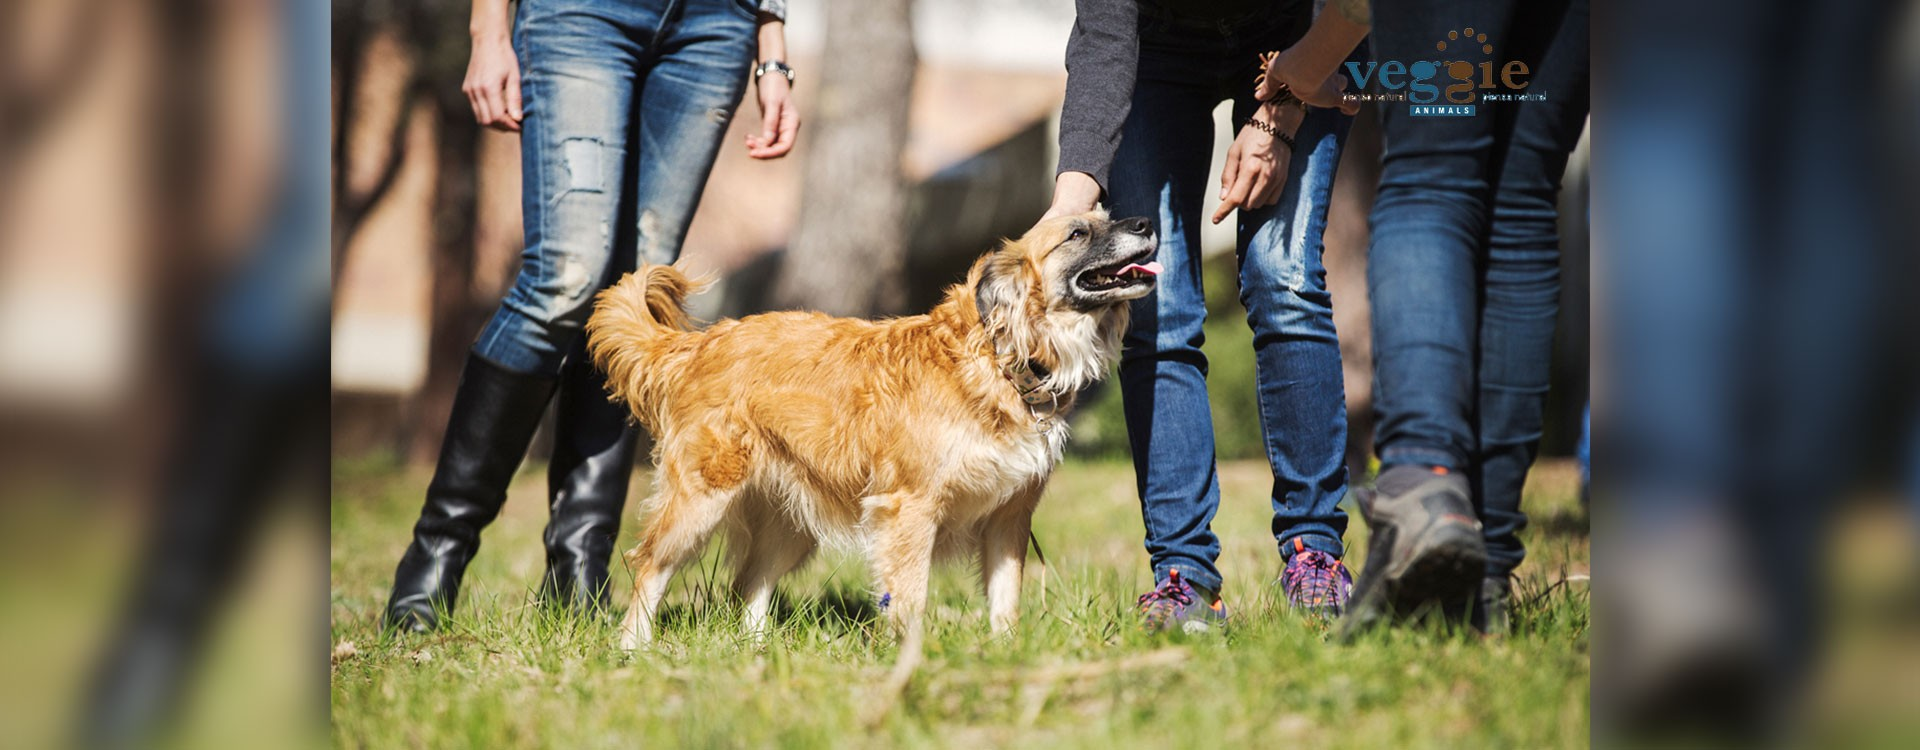 What time is the best to walk a dog?